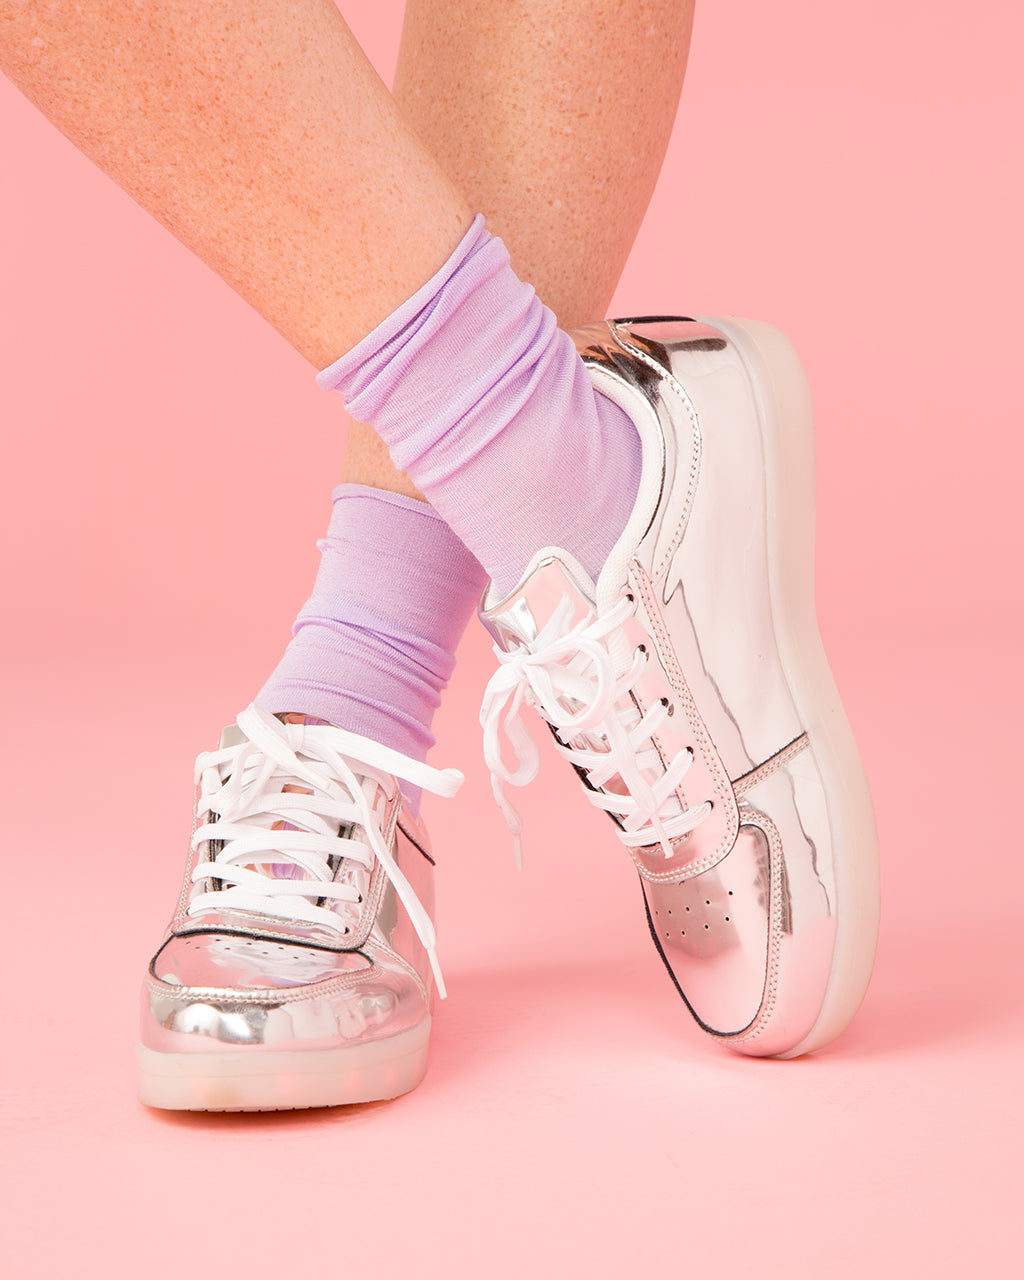 Silver Light Up Sneakers by party store - shoes - ban.do 40c286d9a682